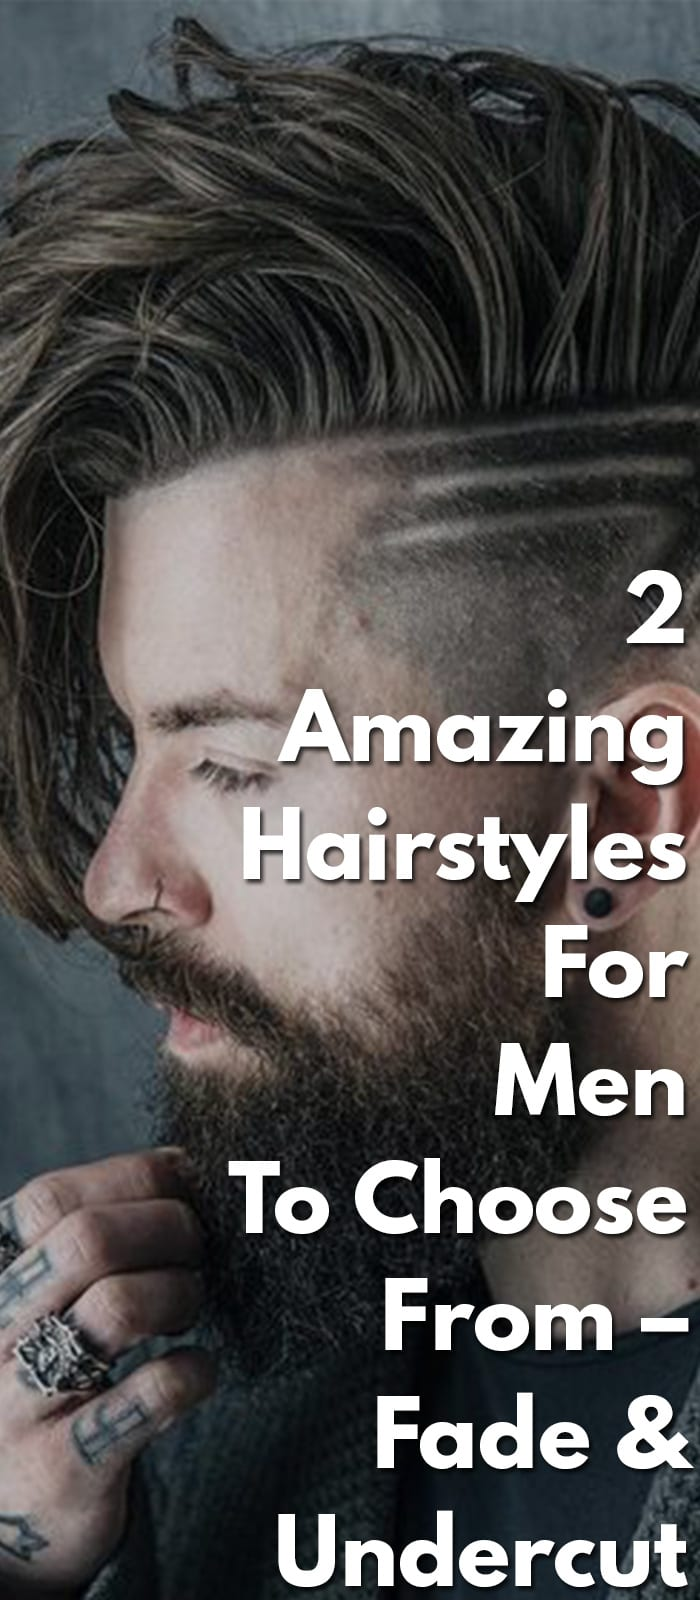 2-Amazing-Hairstyles-For-Men-To-Choose-From-–-Fade-&-Undercut